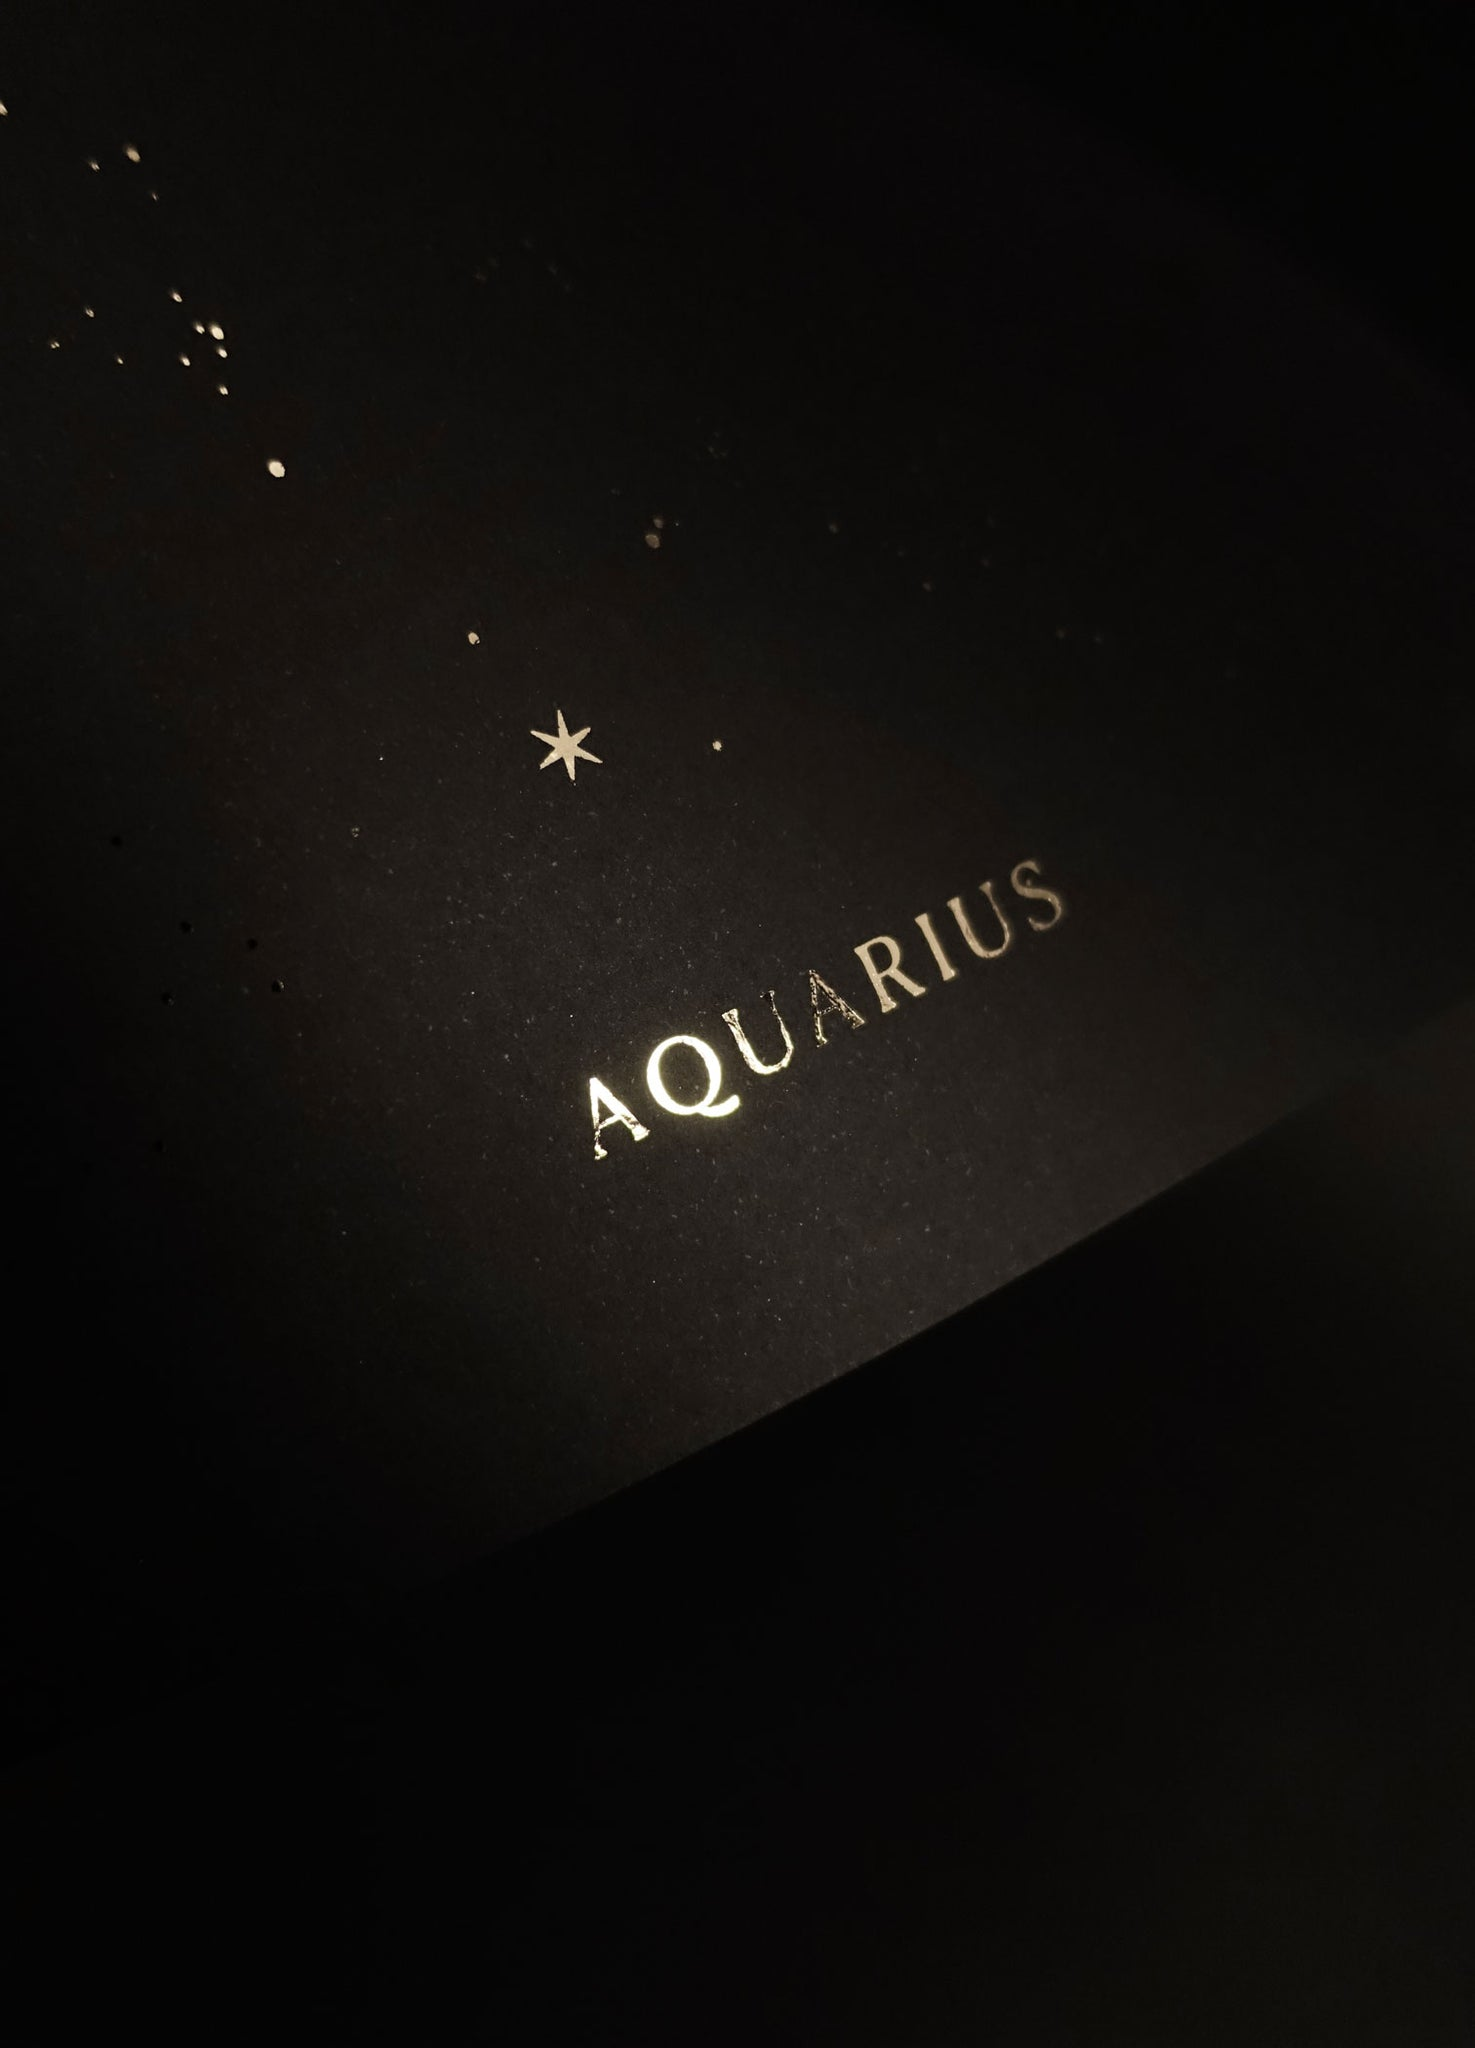 Aquarius zodiac constellation gold metallic foil print on black paper by Cocorrina